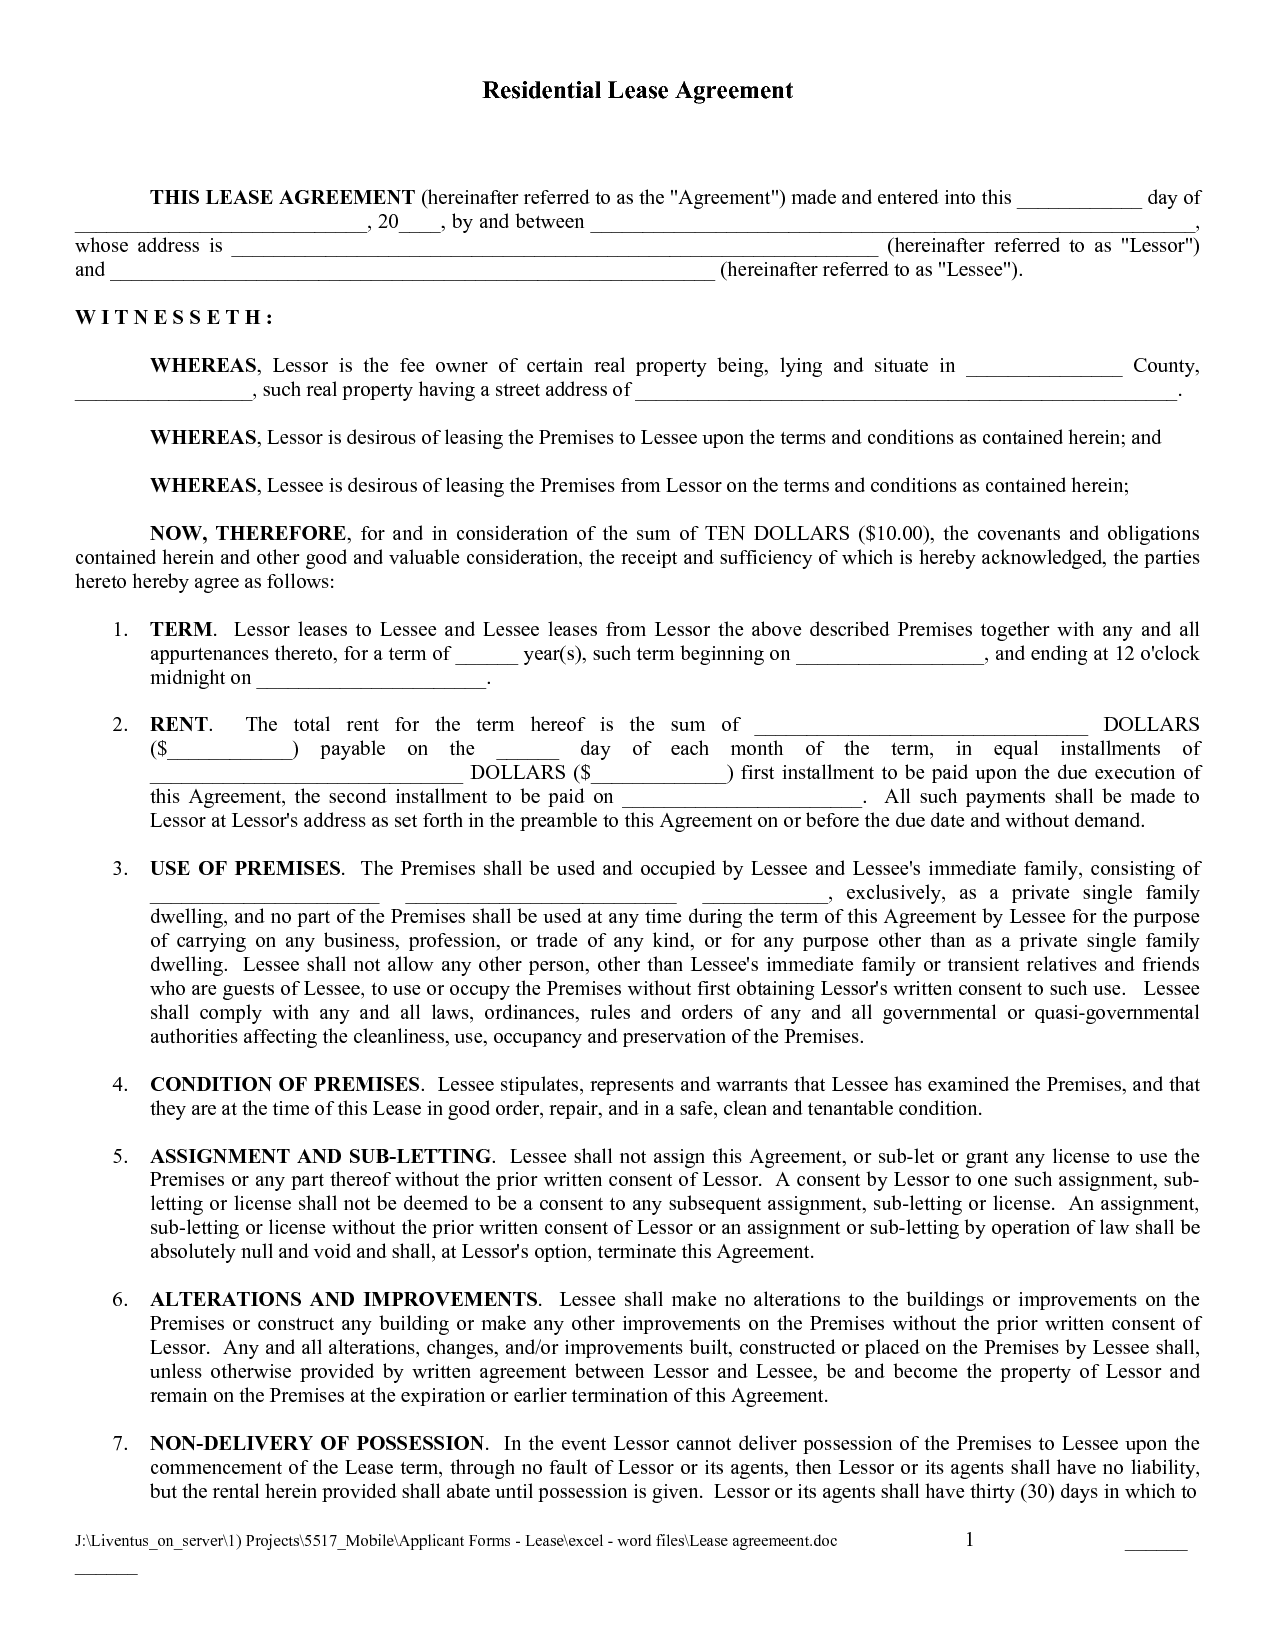 Free Printable Lease Agreement Download as PDF Lease